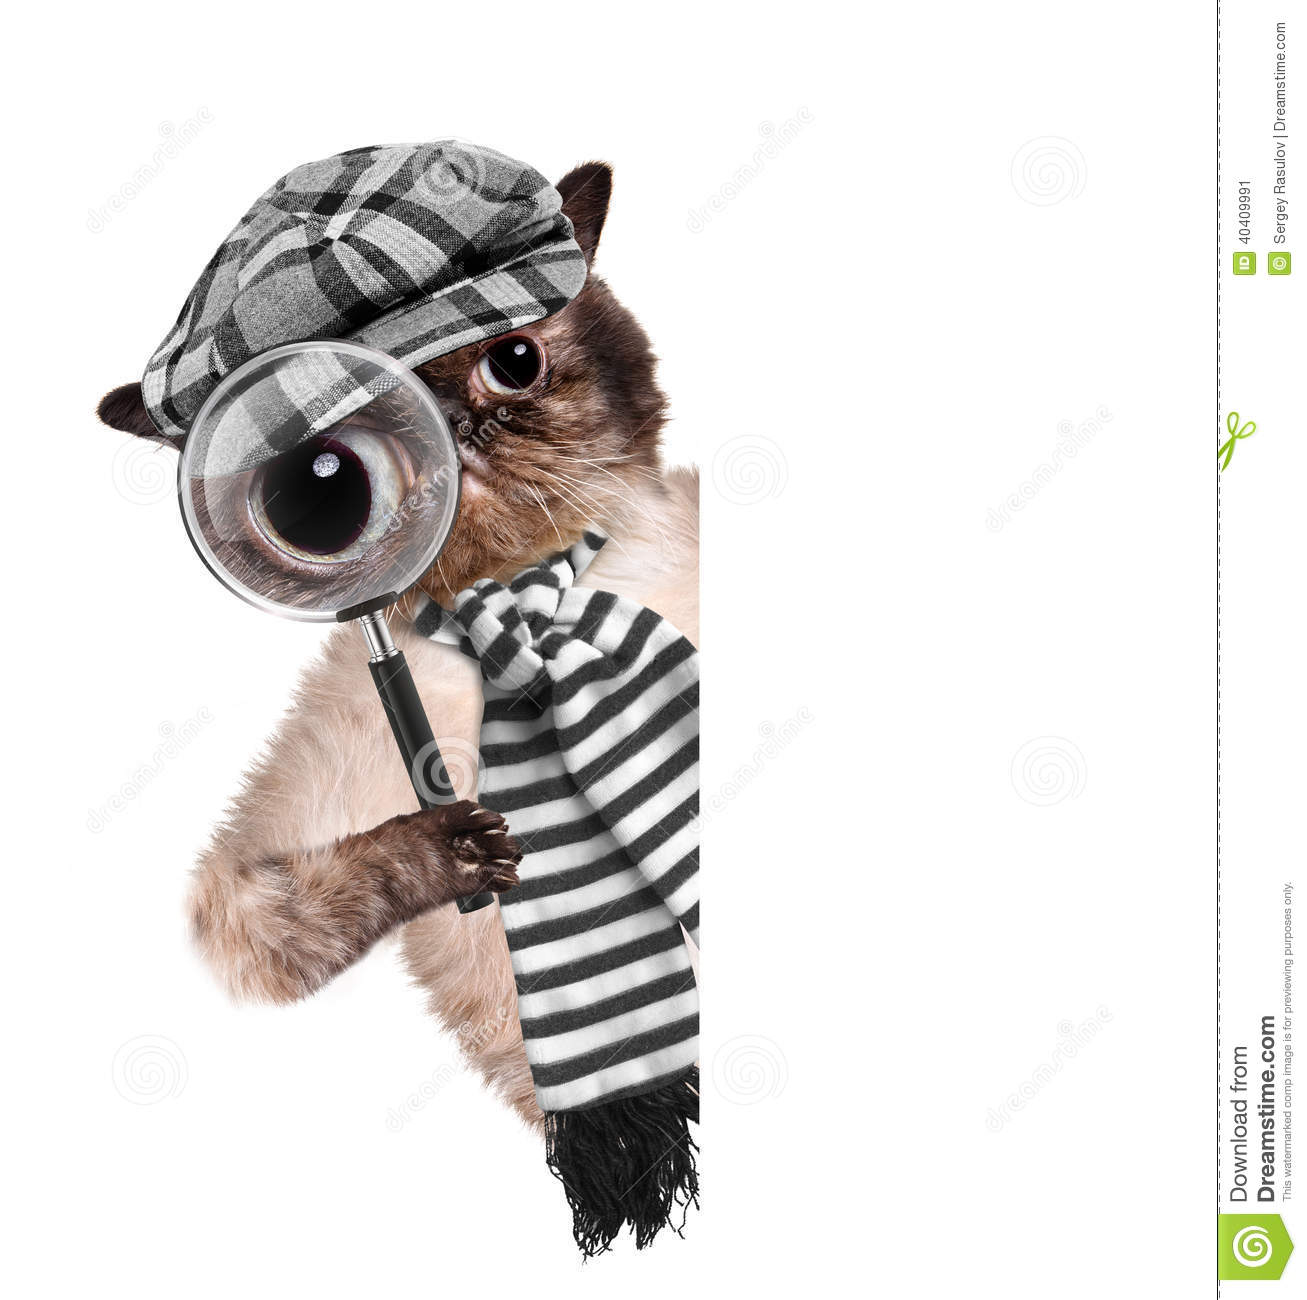 Cat with magnifying glass and searching. Creative.